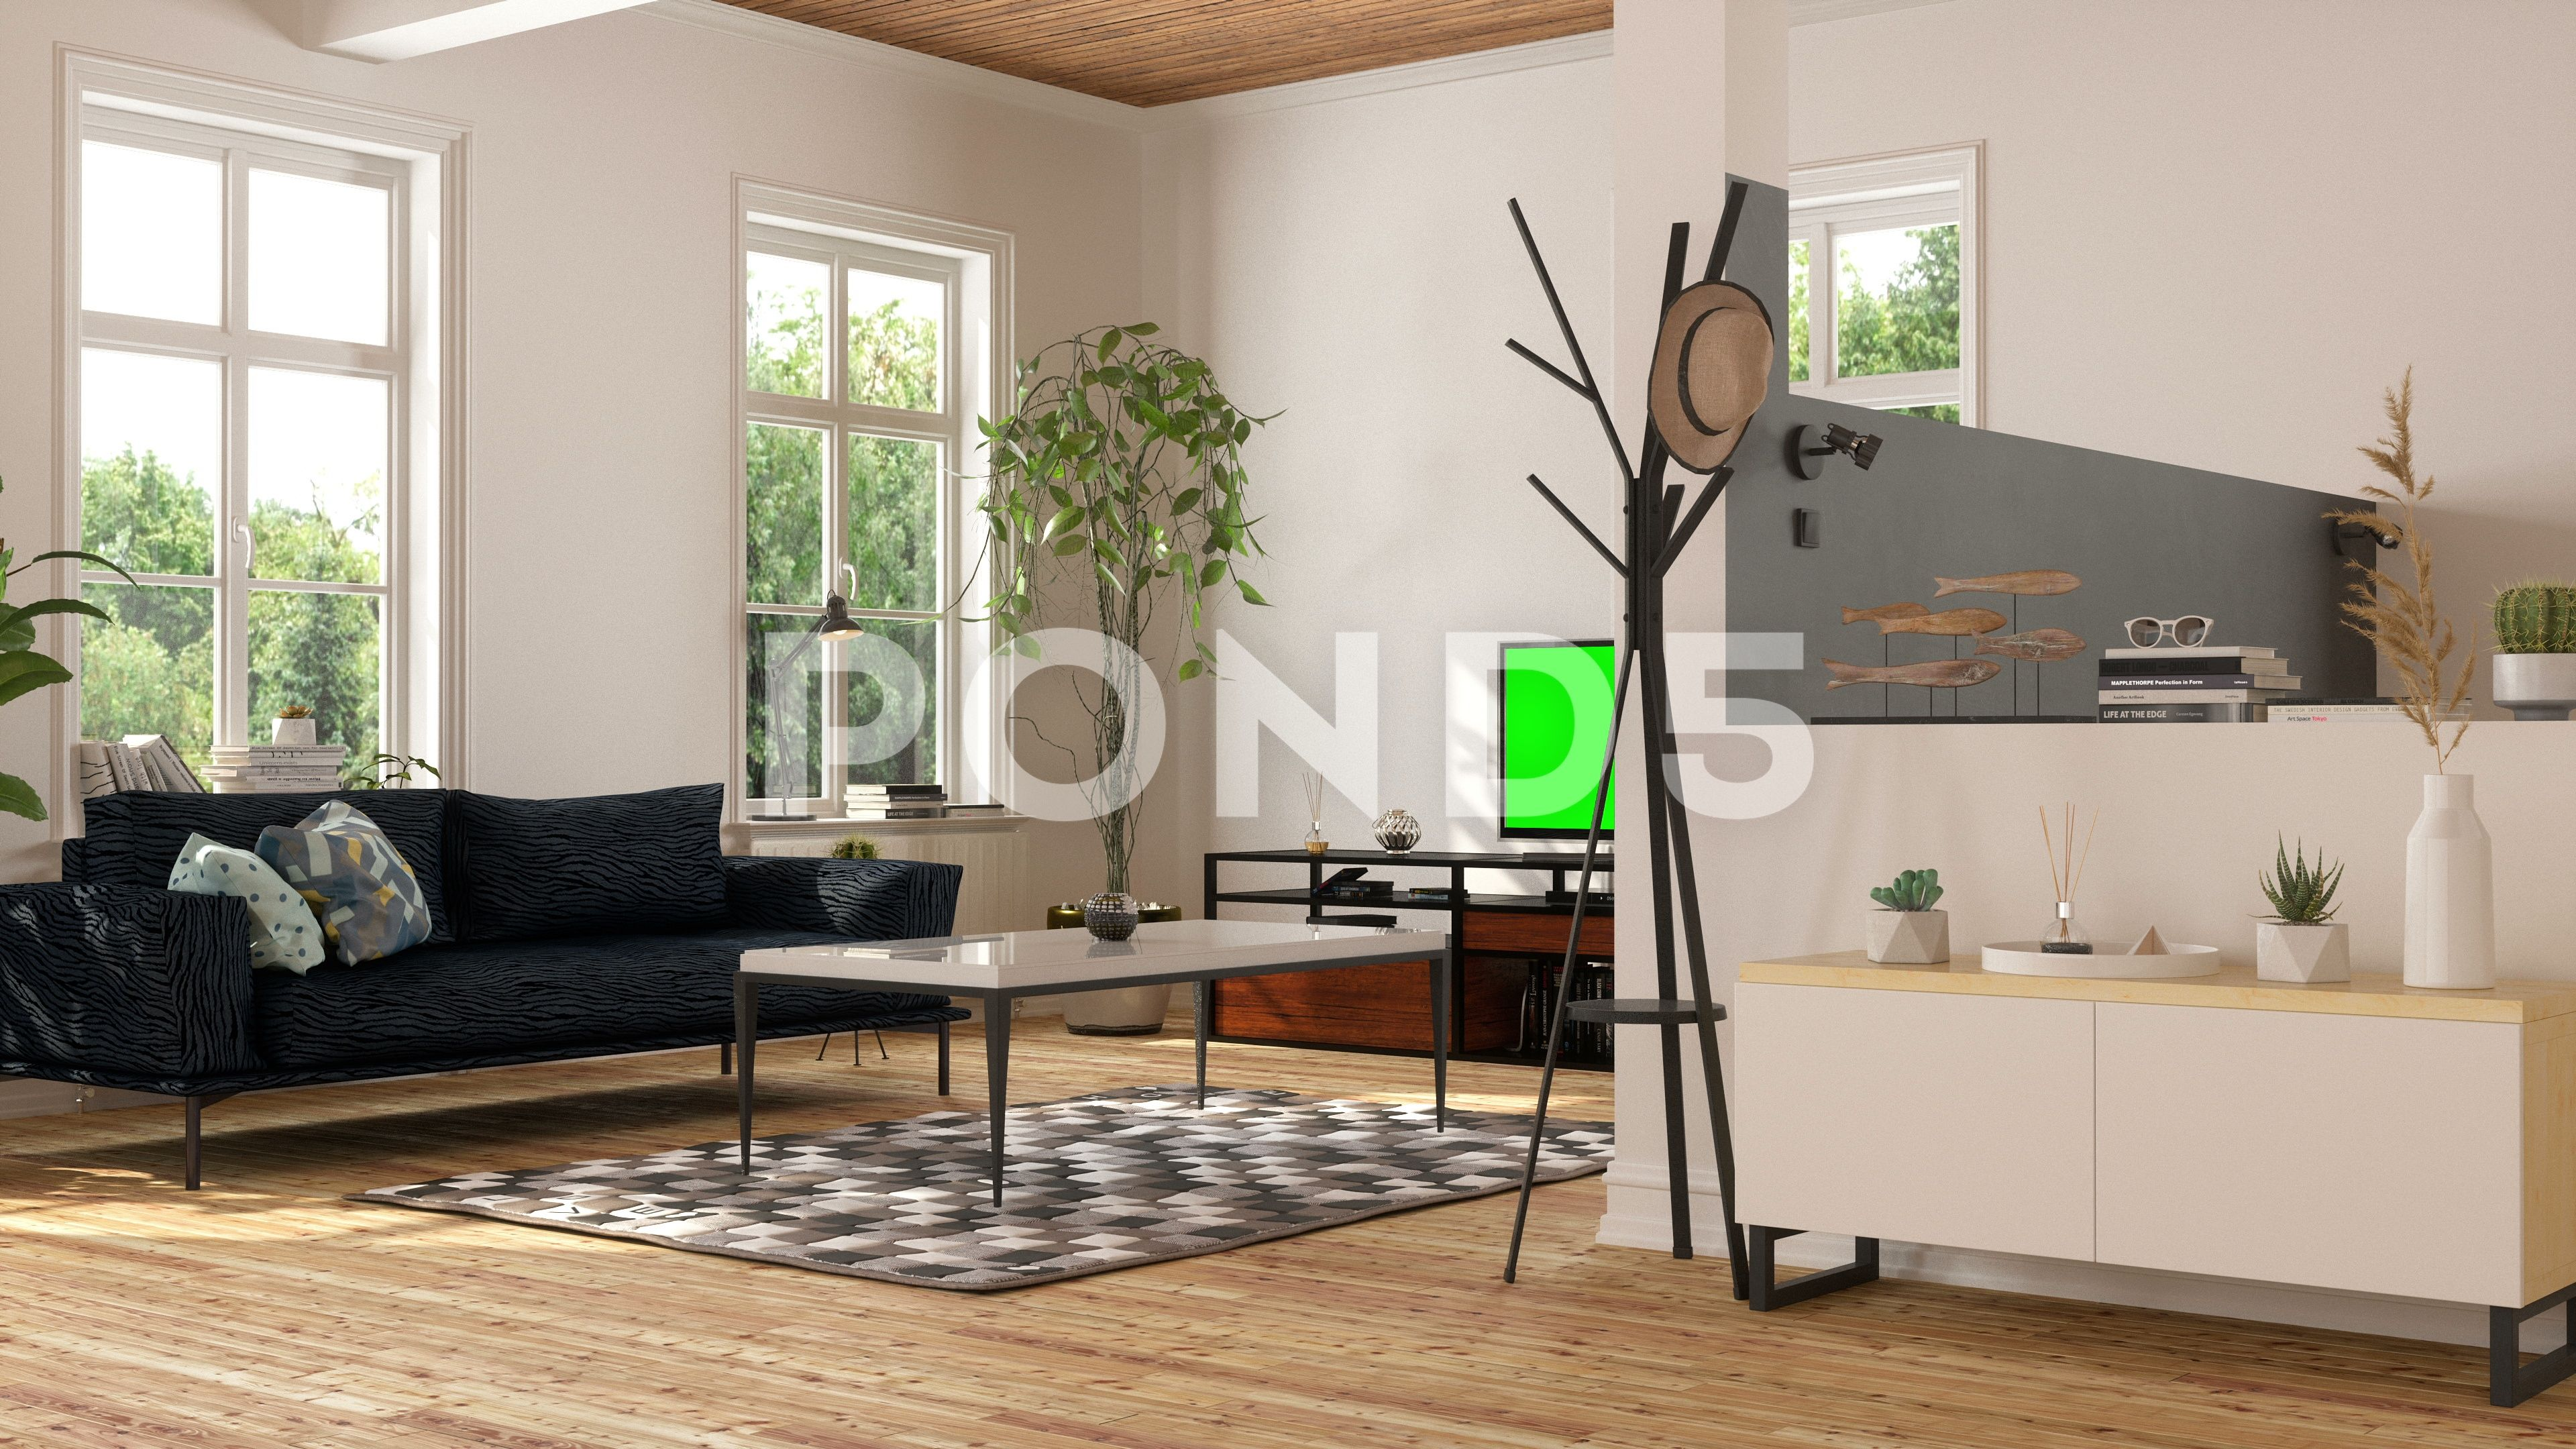 Modern Living Room With Television Set With Green Screen Stock Footage Ad Room Television Modern Living Modern Living Room Living Room Room